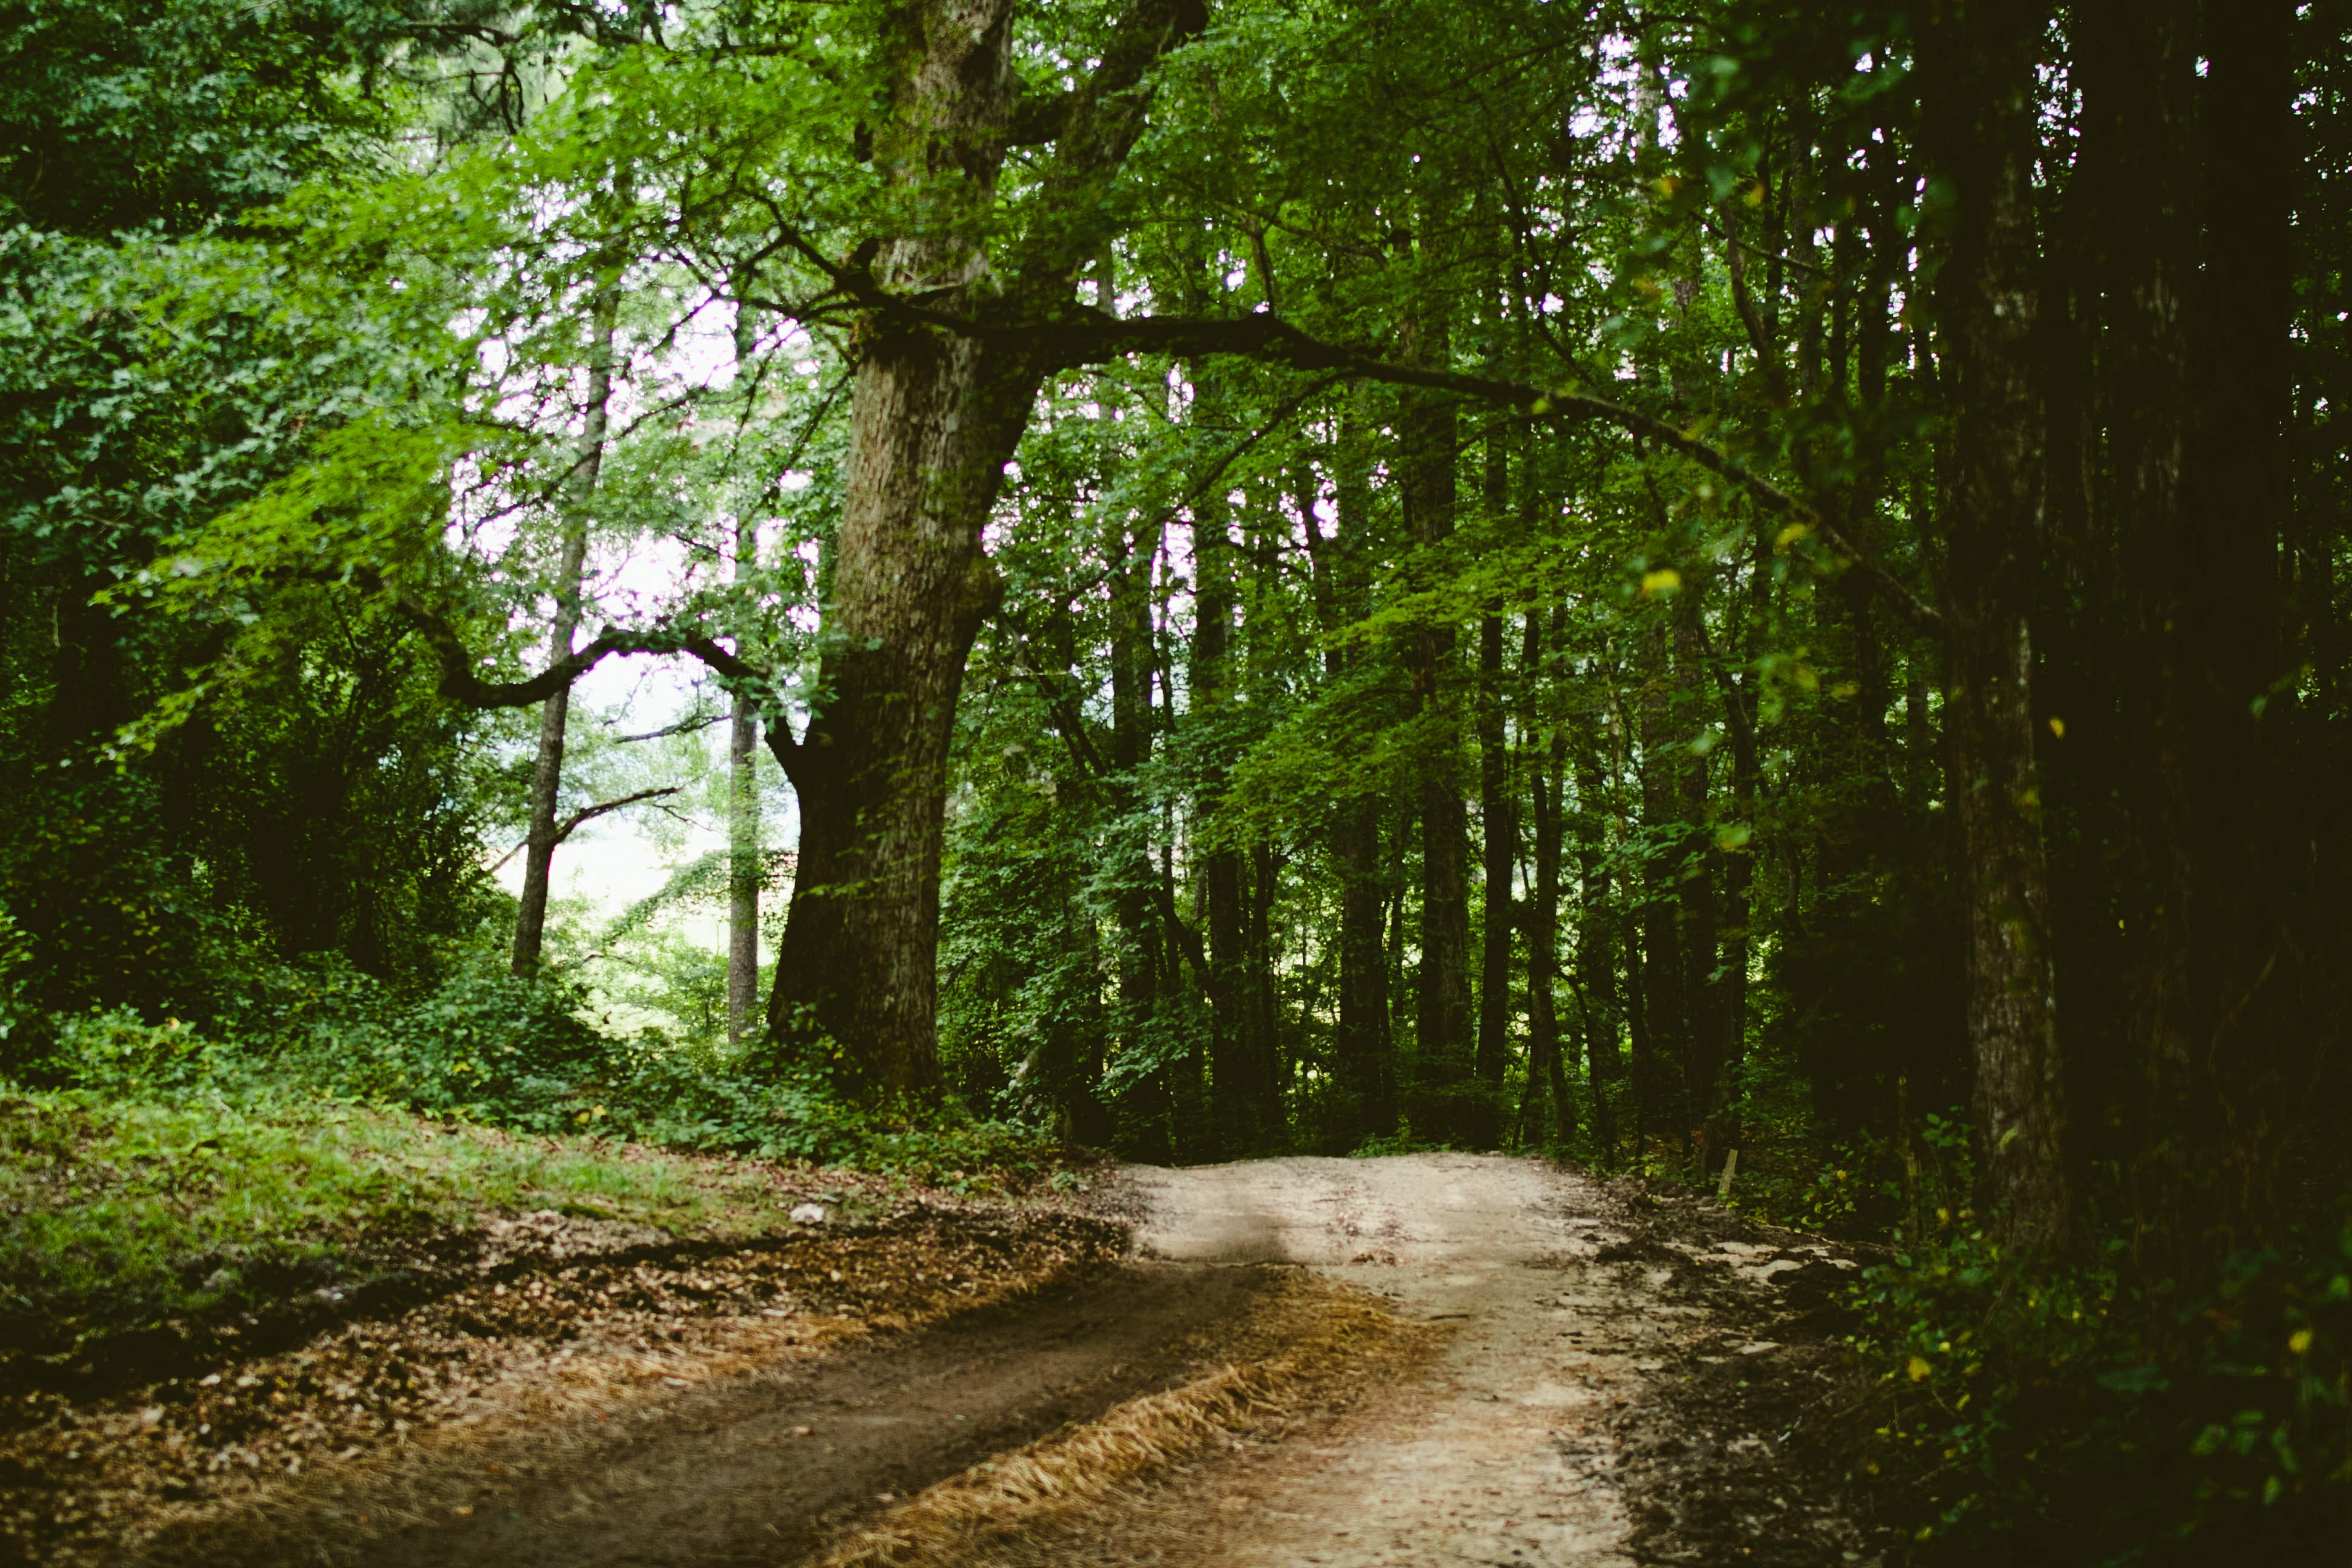 A leaf-covered dirt road through a green forest